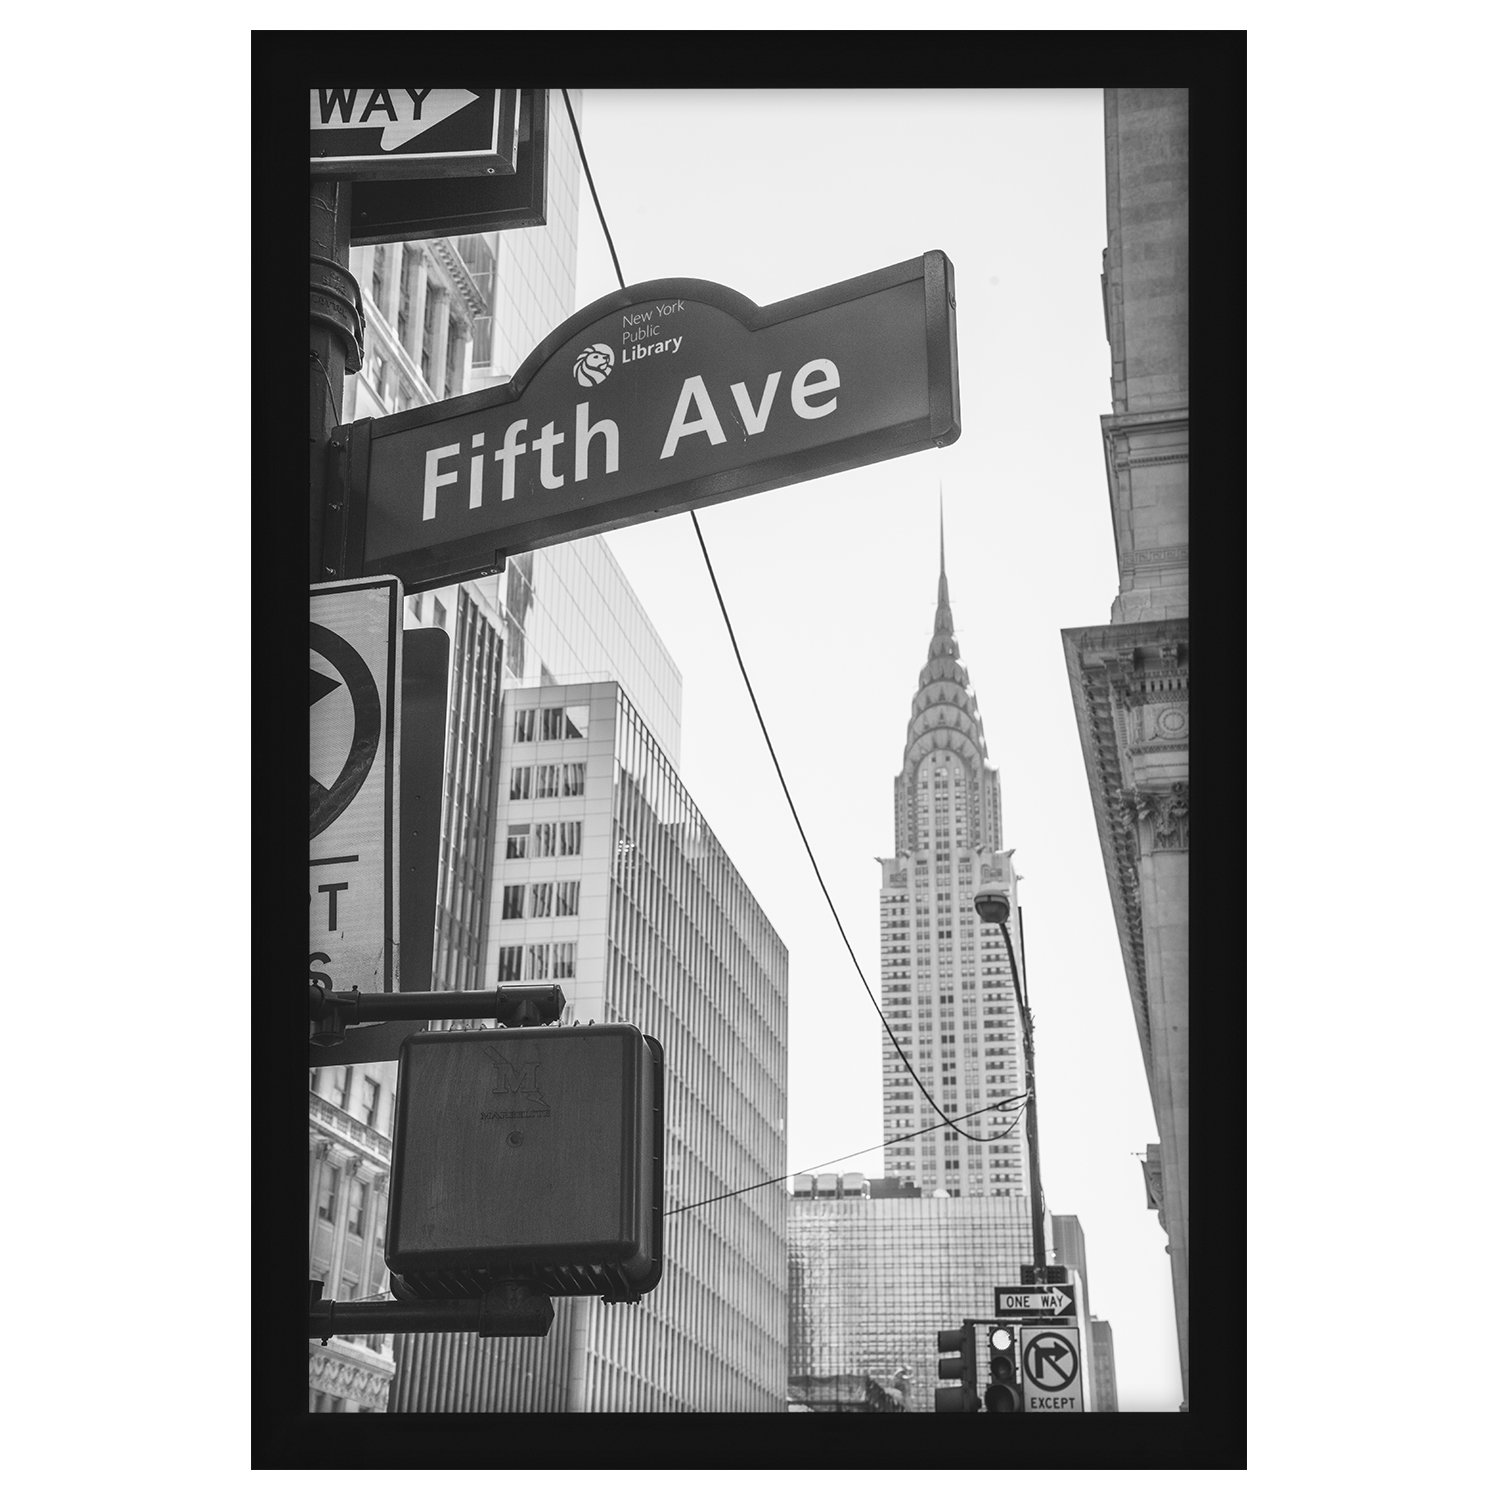 Americanflat 13x19 Poster Frame, Black by Americanflat